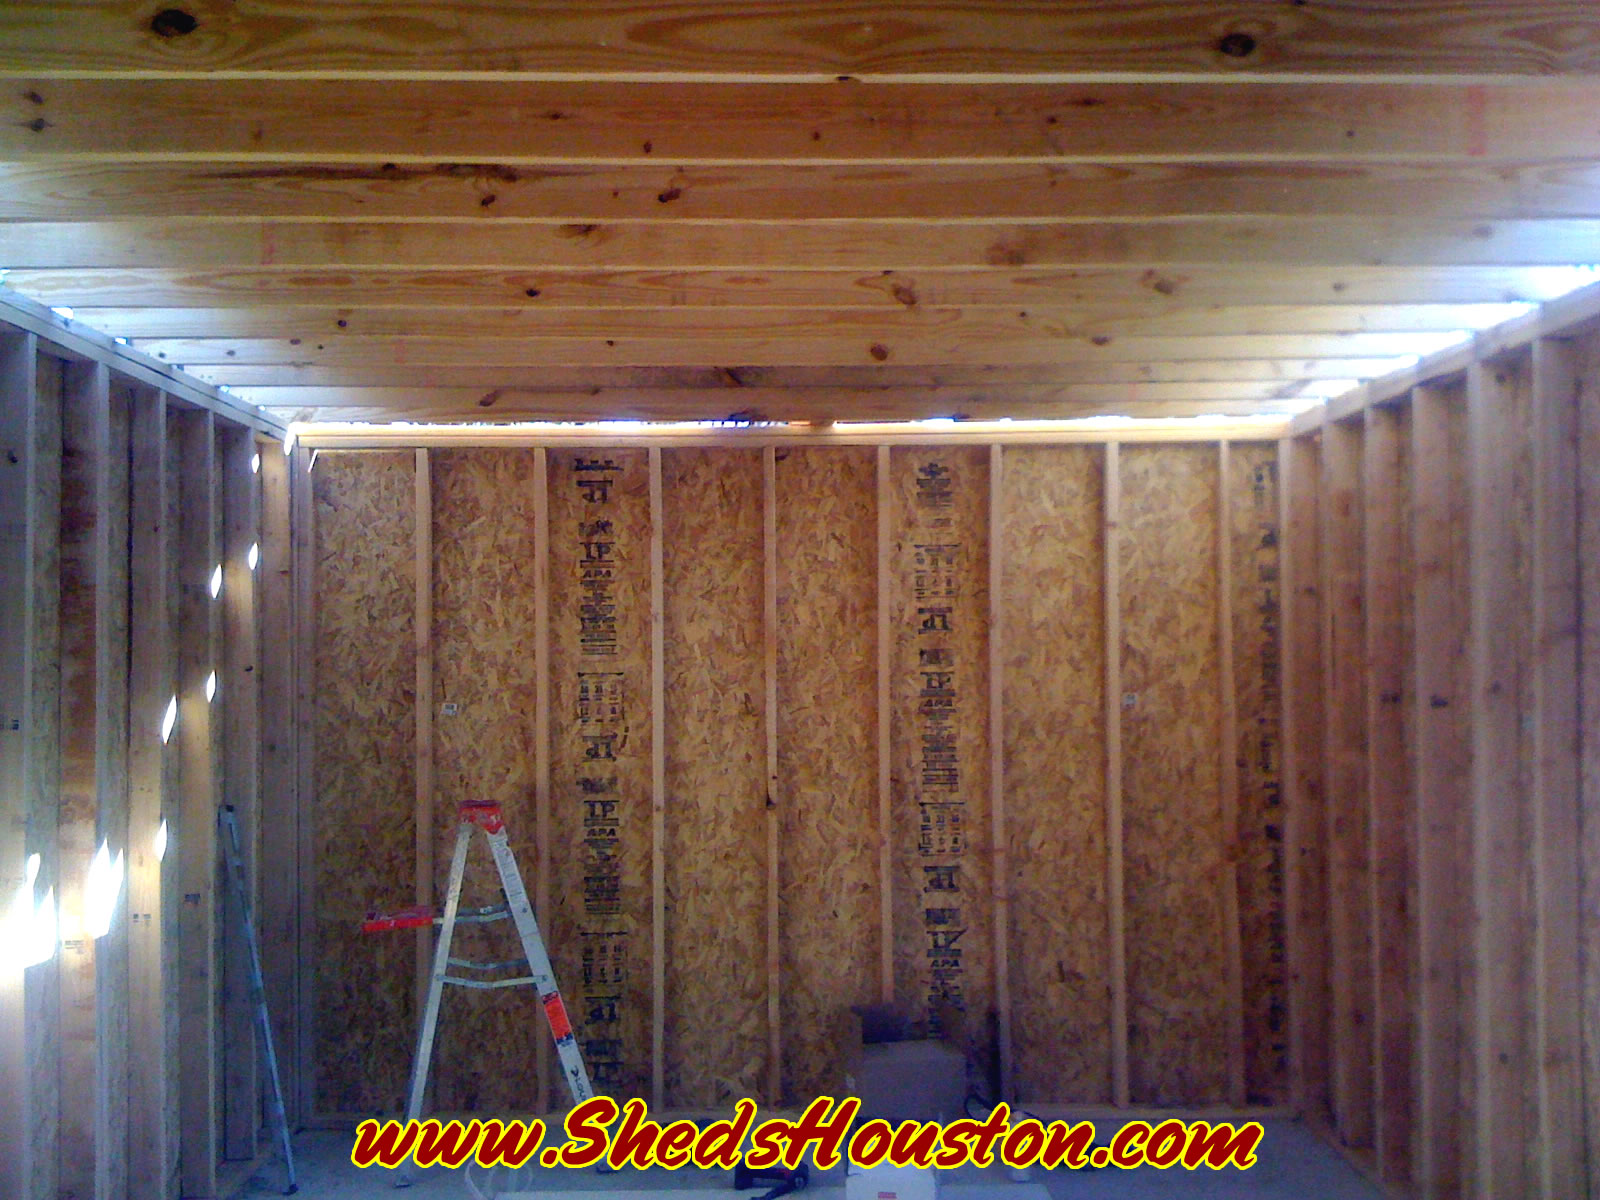 ^ Bridge building with basswood, storage sheds houston area, sheds ...